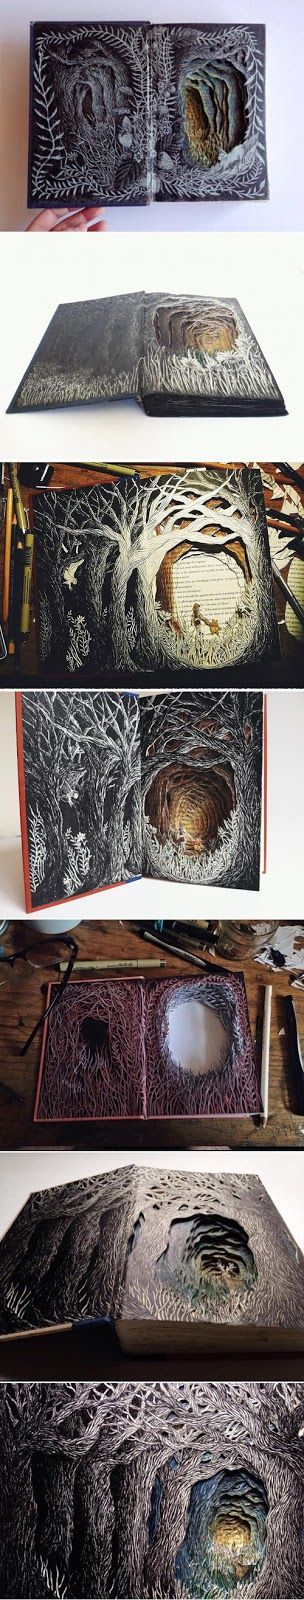 Seattle based illustrator Isobelle Ouzman  breathes new life into discarded books by turning them into scul...